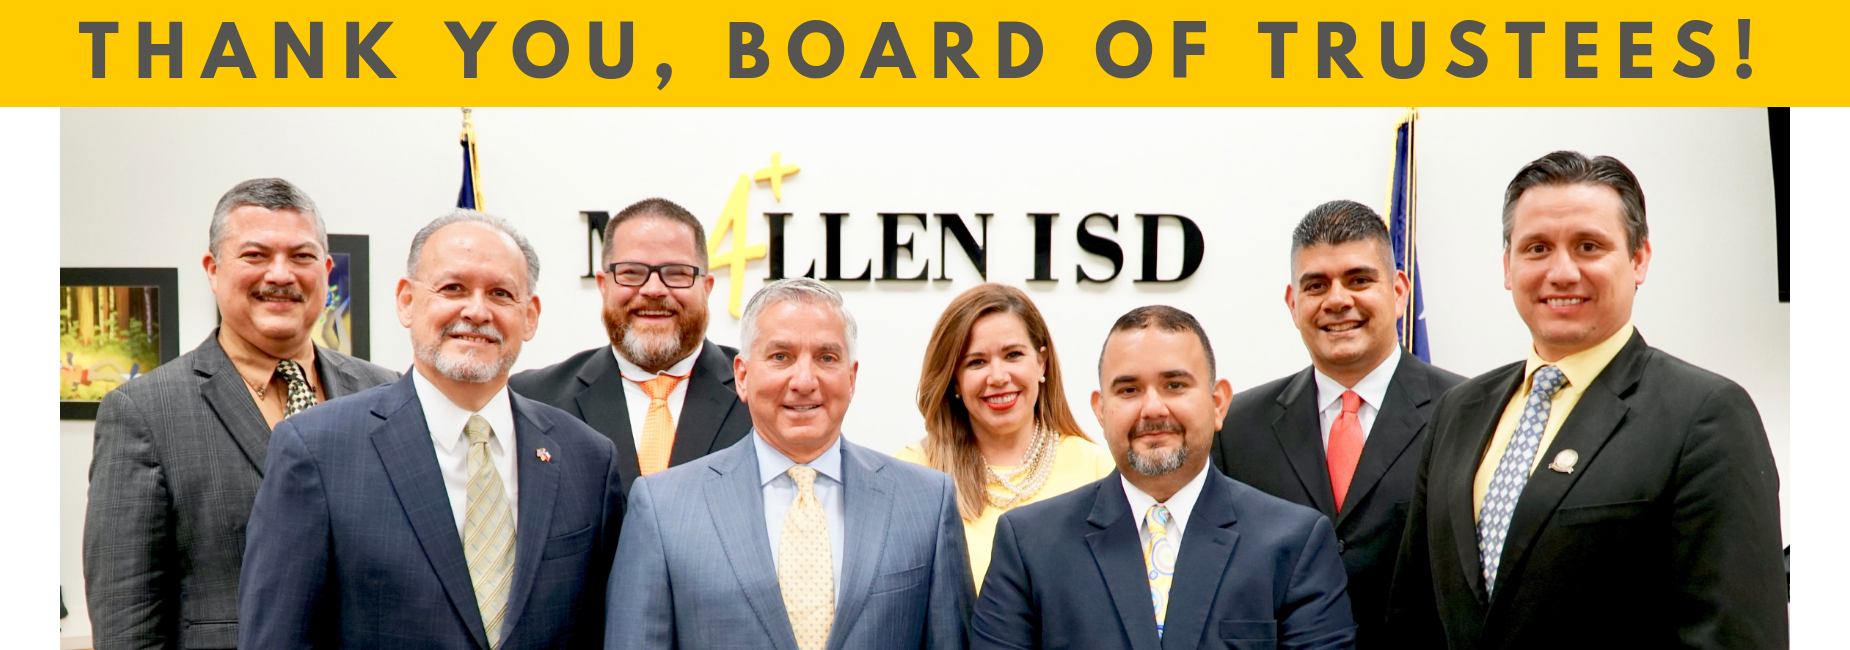 Thank you, Board of Trustees!